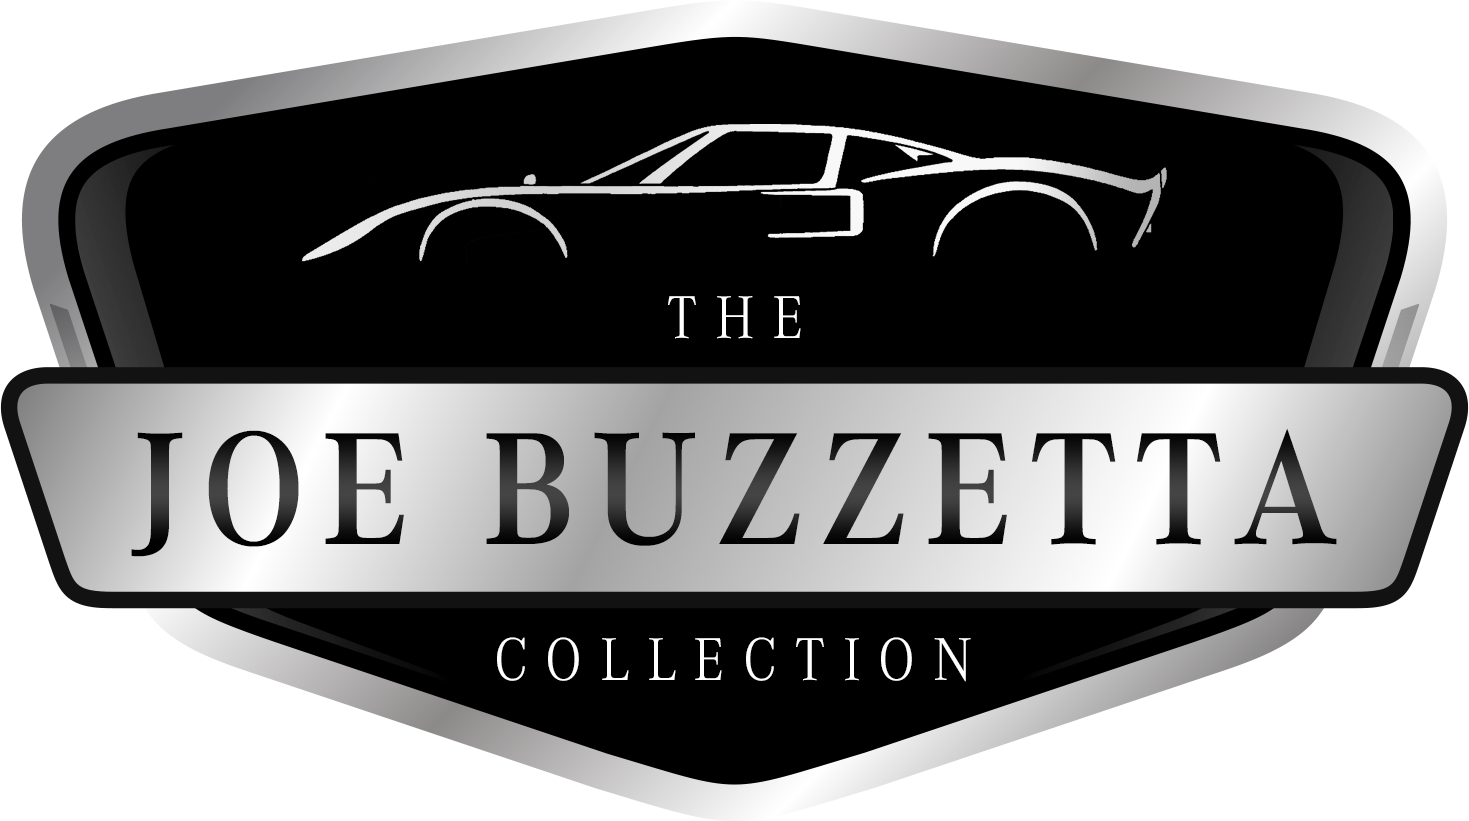 The Joe Buzzetta Collection